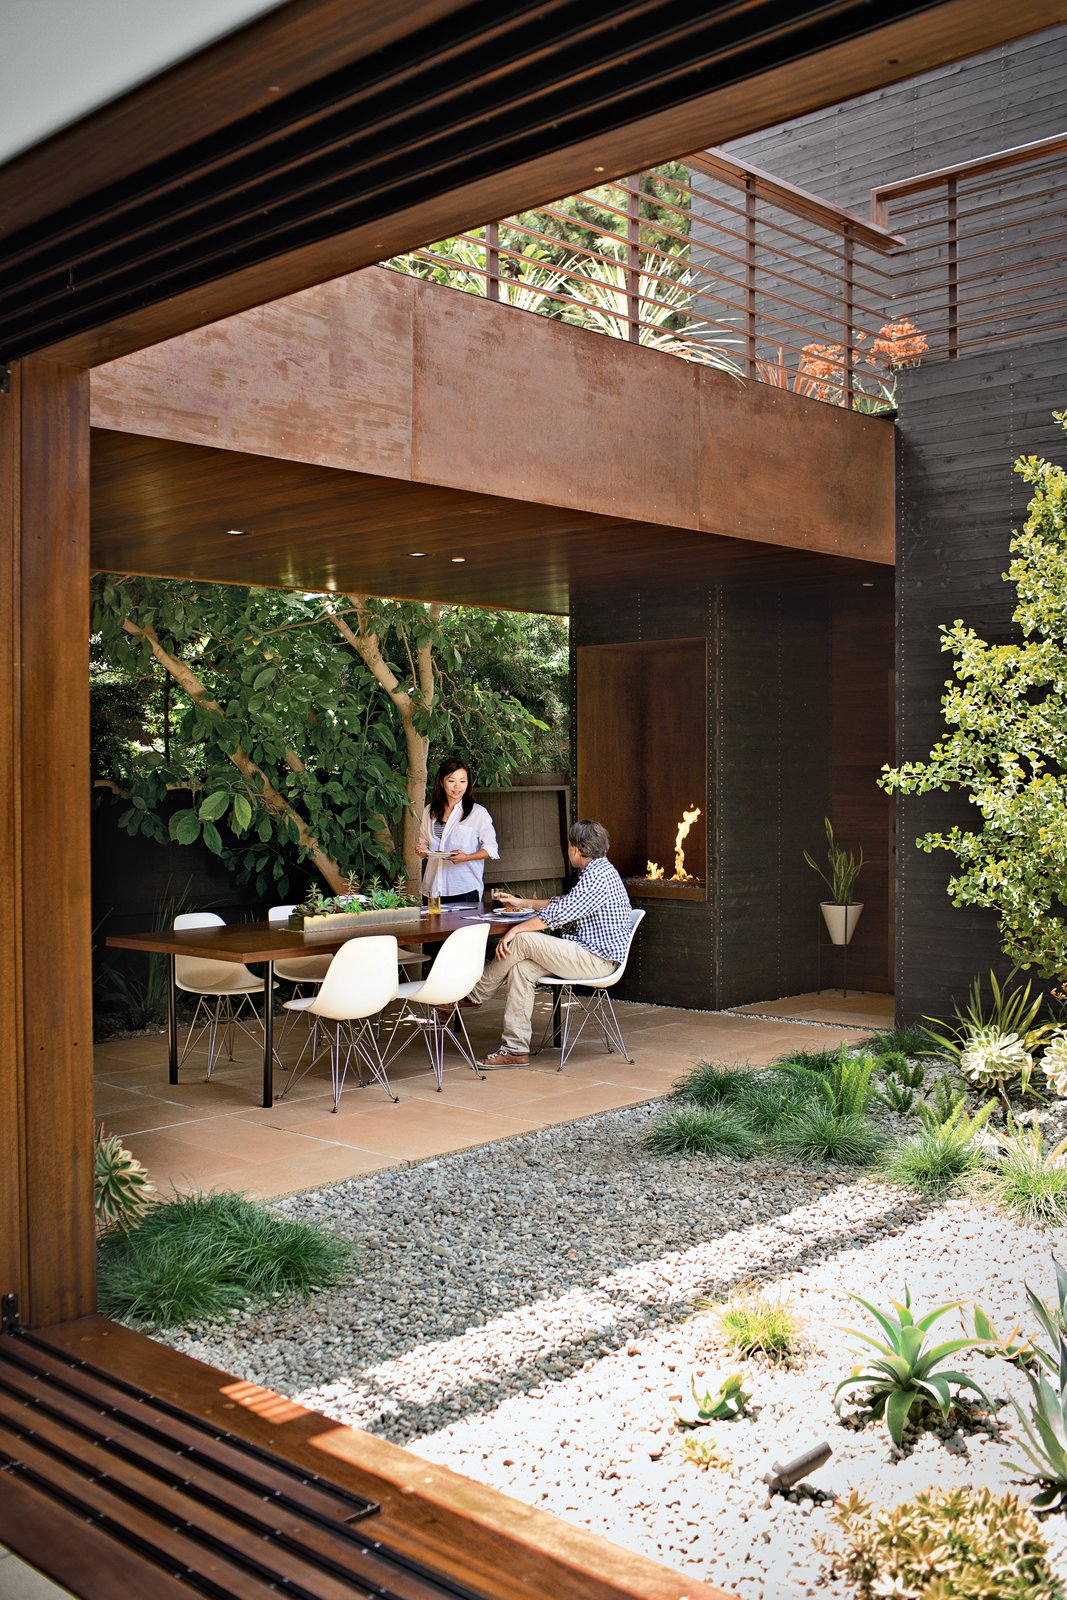 Outdoor, Back Yard, Trees, Shrubs, Hardscapes, Small, Raised Planters, Tile, and Landscape The couple often dine on the patio off the kitchen, warmed by a fireplace from Spark Modern Fires. Photo by Coral von Zumwalt.  Best Outdoor Landscape Photos from A Modern Bungalow in Venice Beach